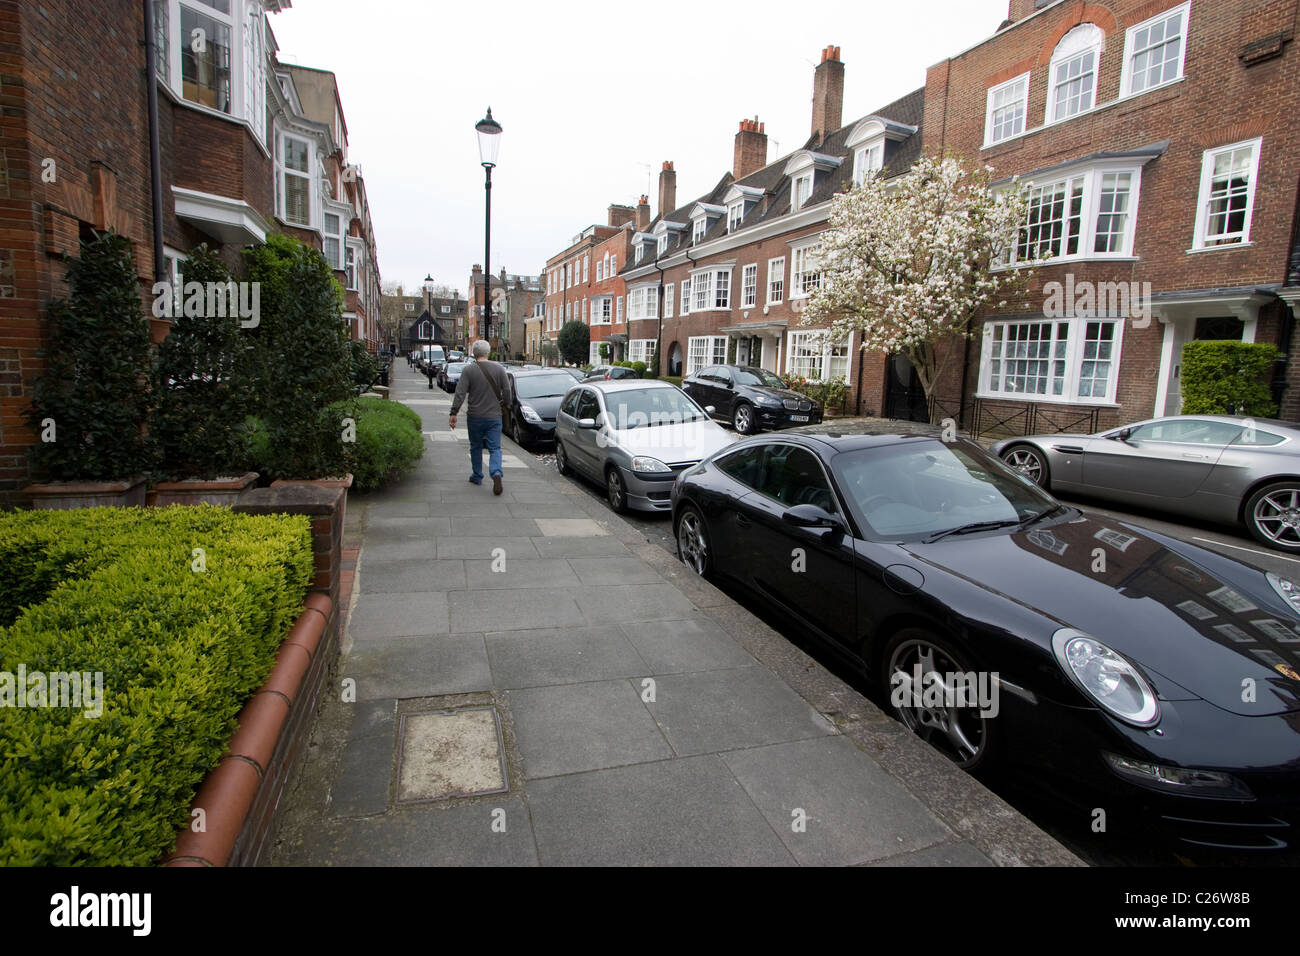 Mallord street chelsea one of the most expensive streets in London - Stock Image